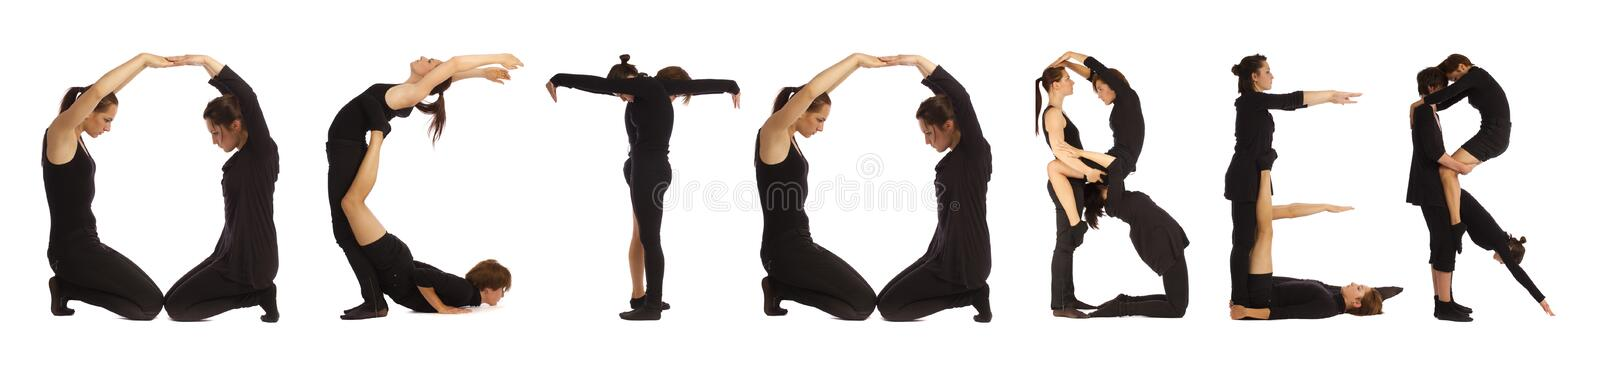 Black dressed people forming OCTOBER word. Over white background stock images